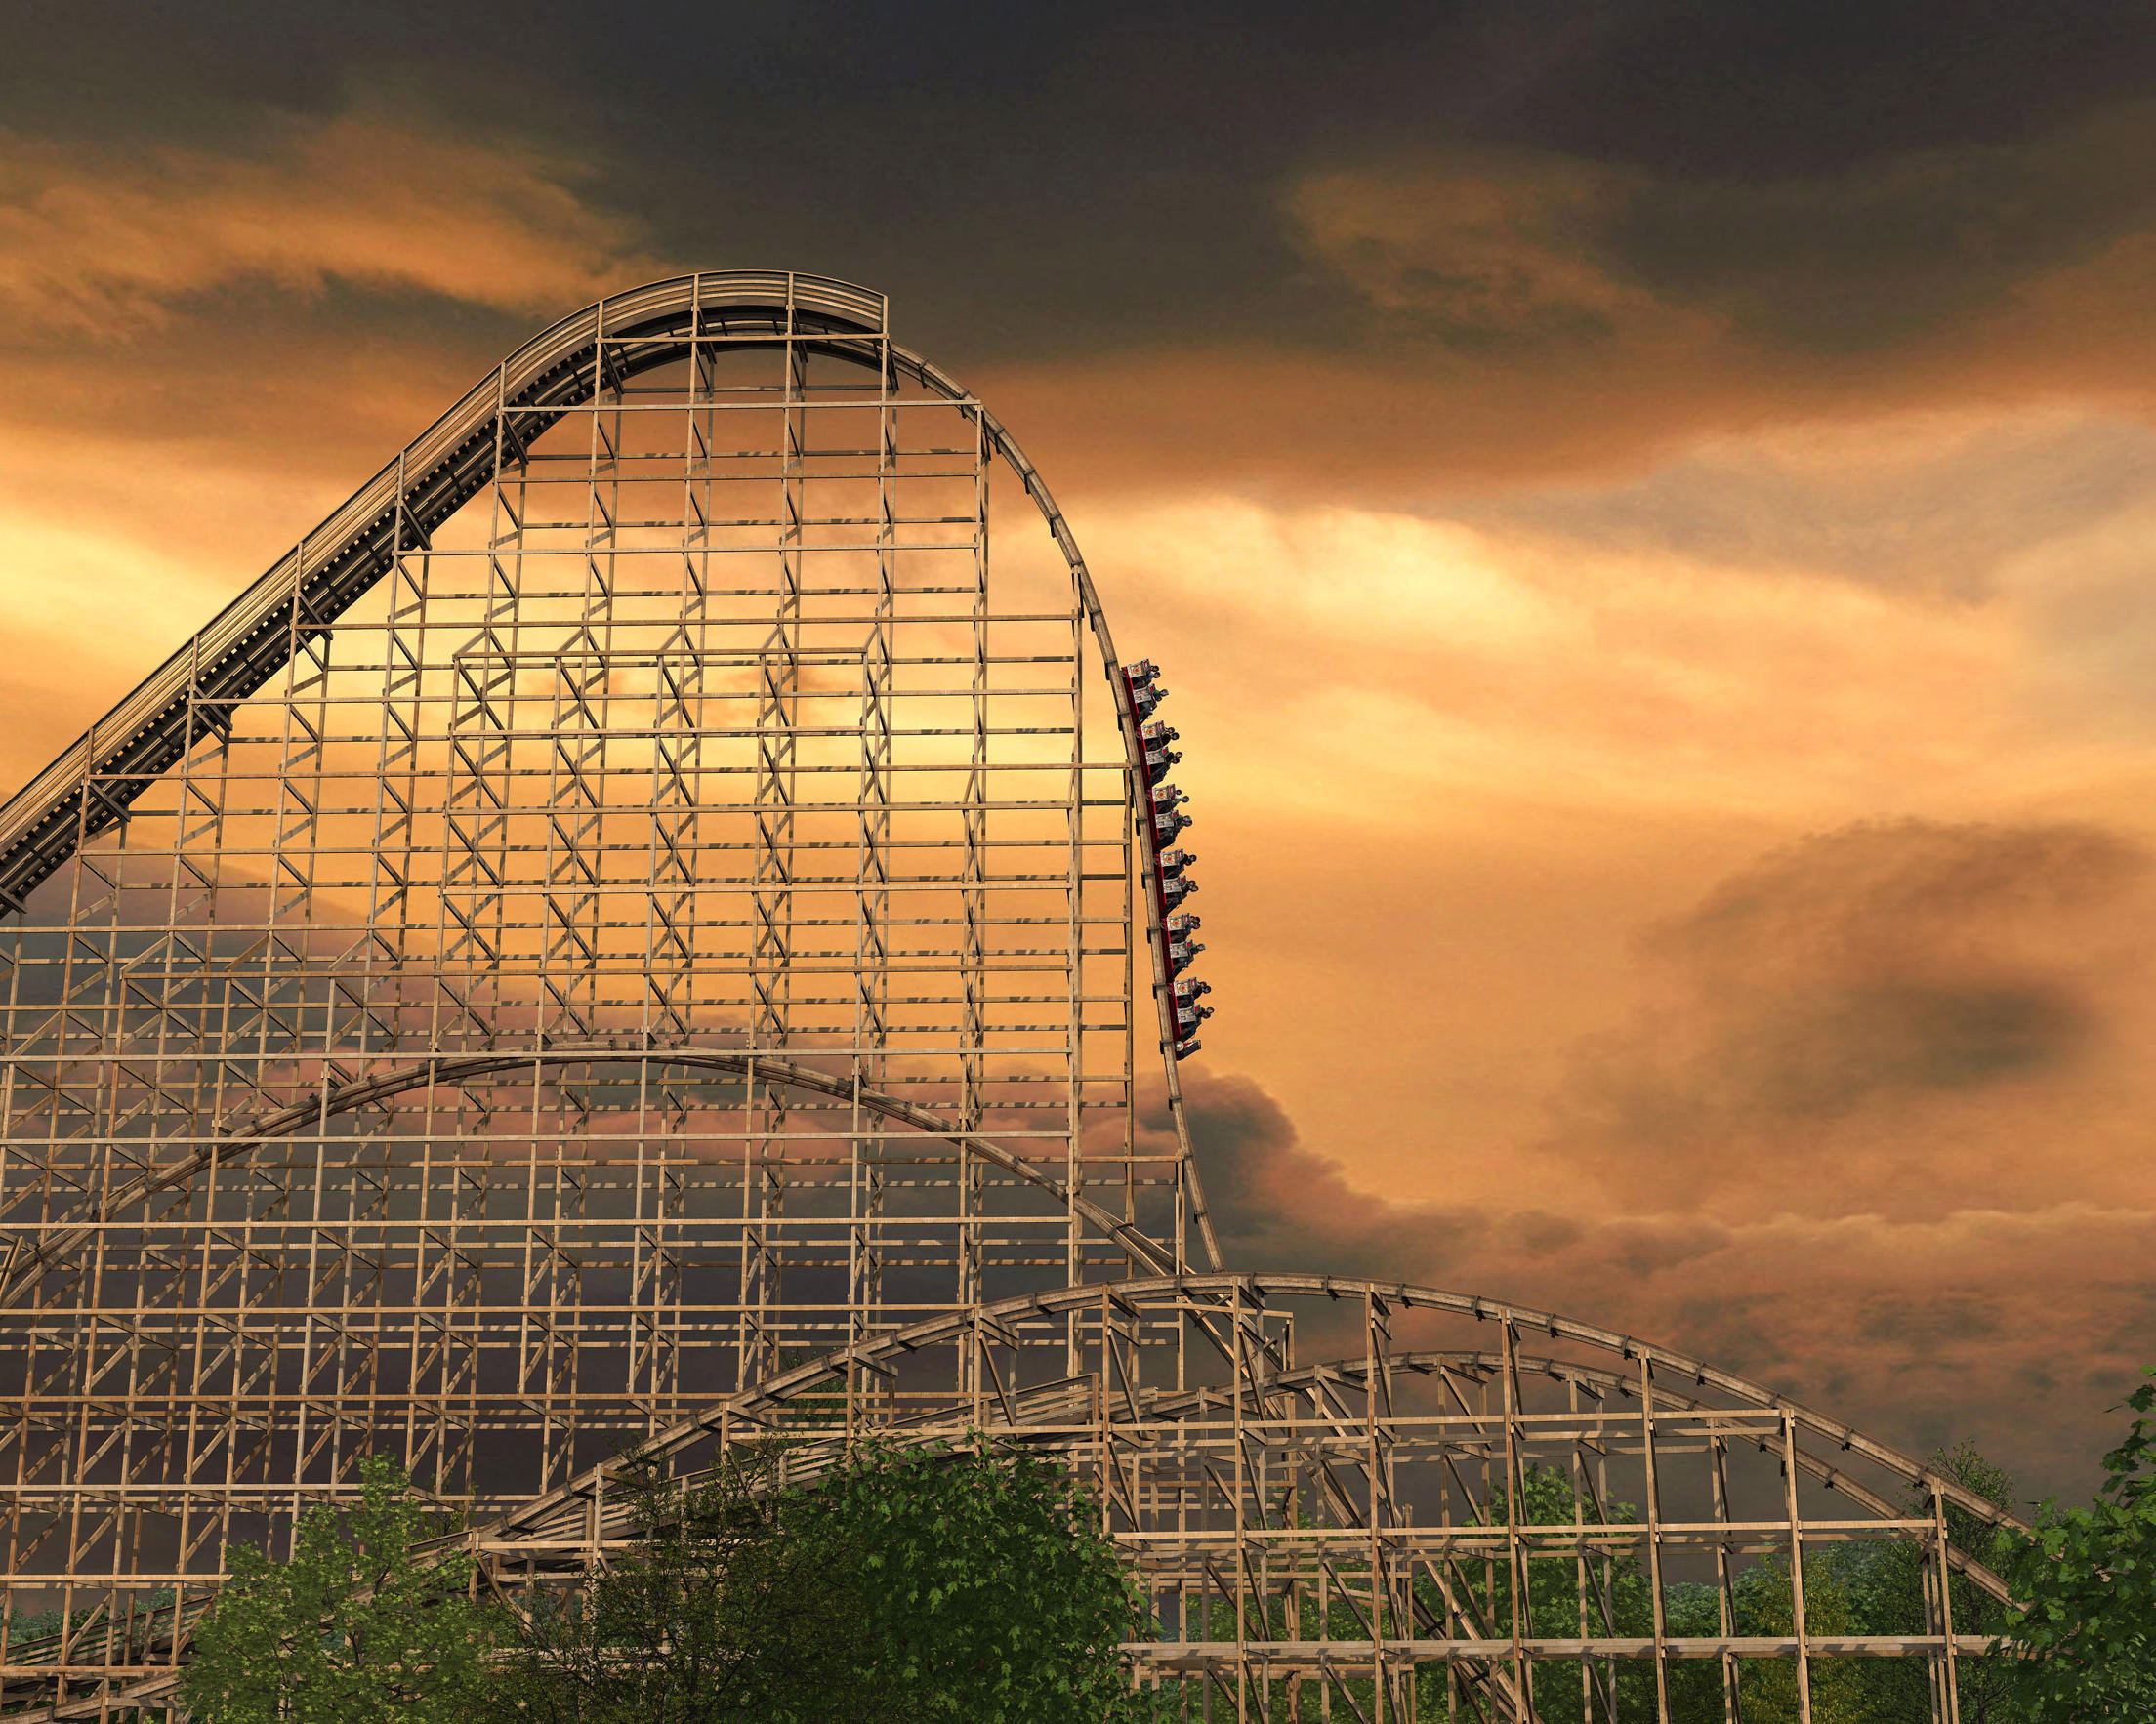 futuristic-attractions-goliath-roller-coaster